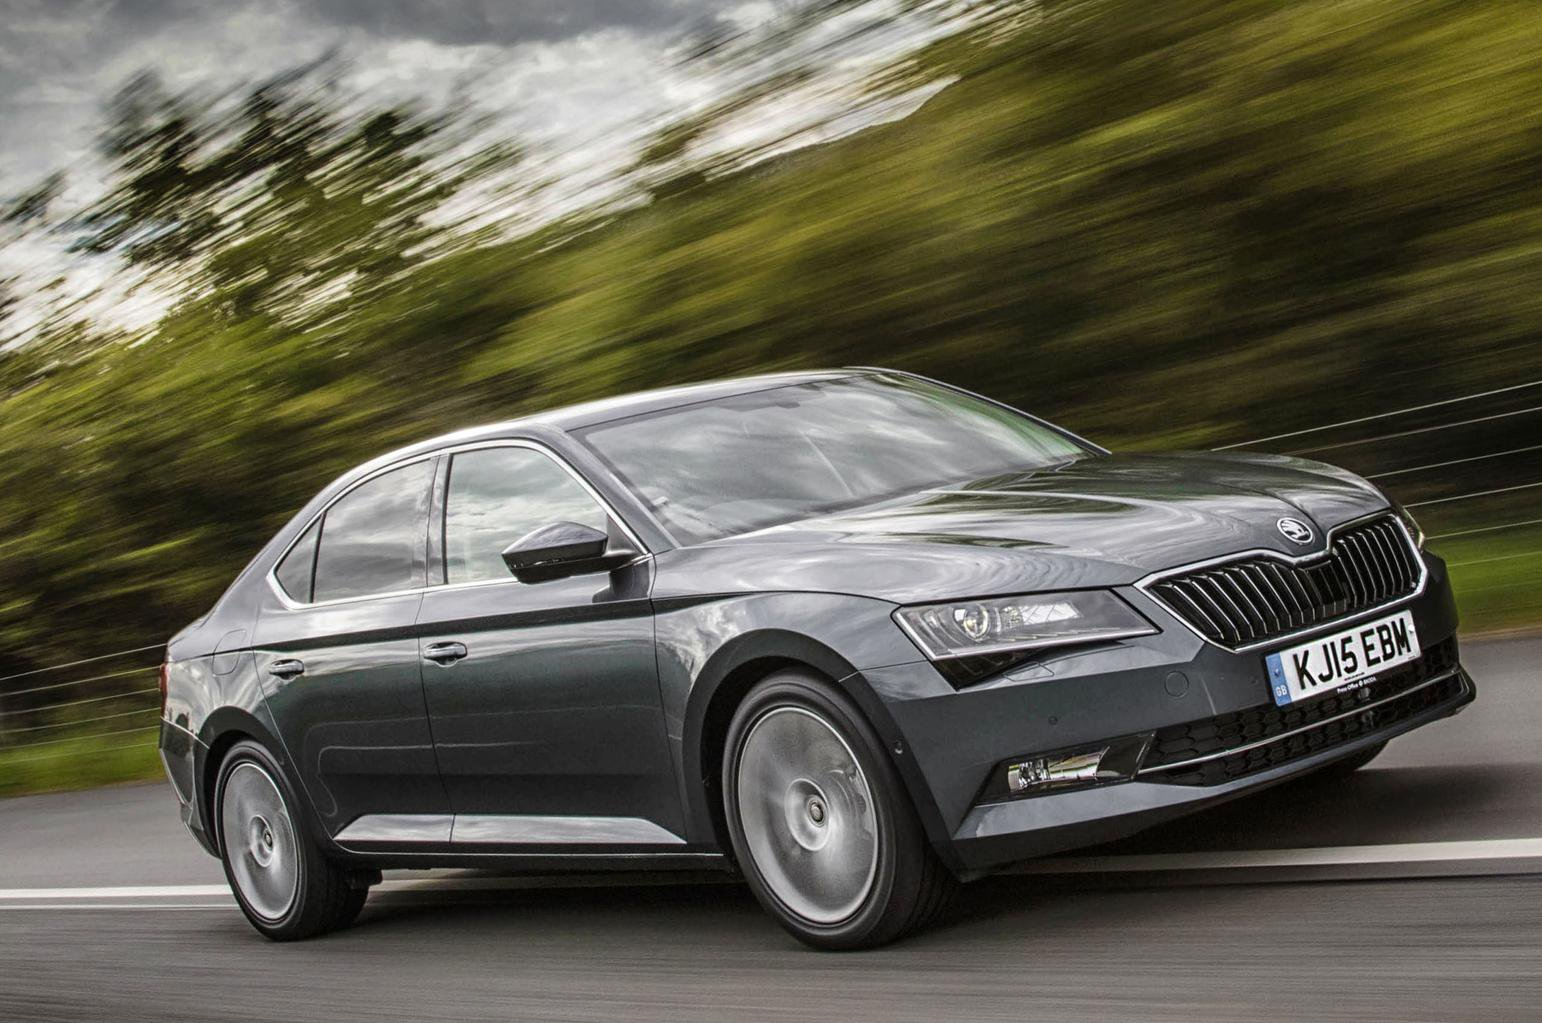 2015 Skoda Superb 2.0 TDI 190 DSG review